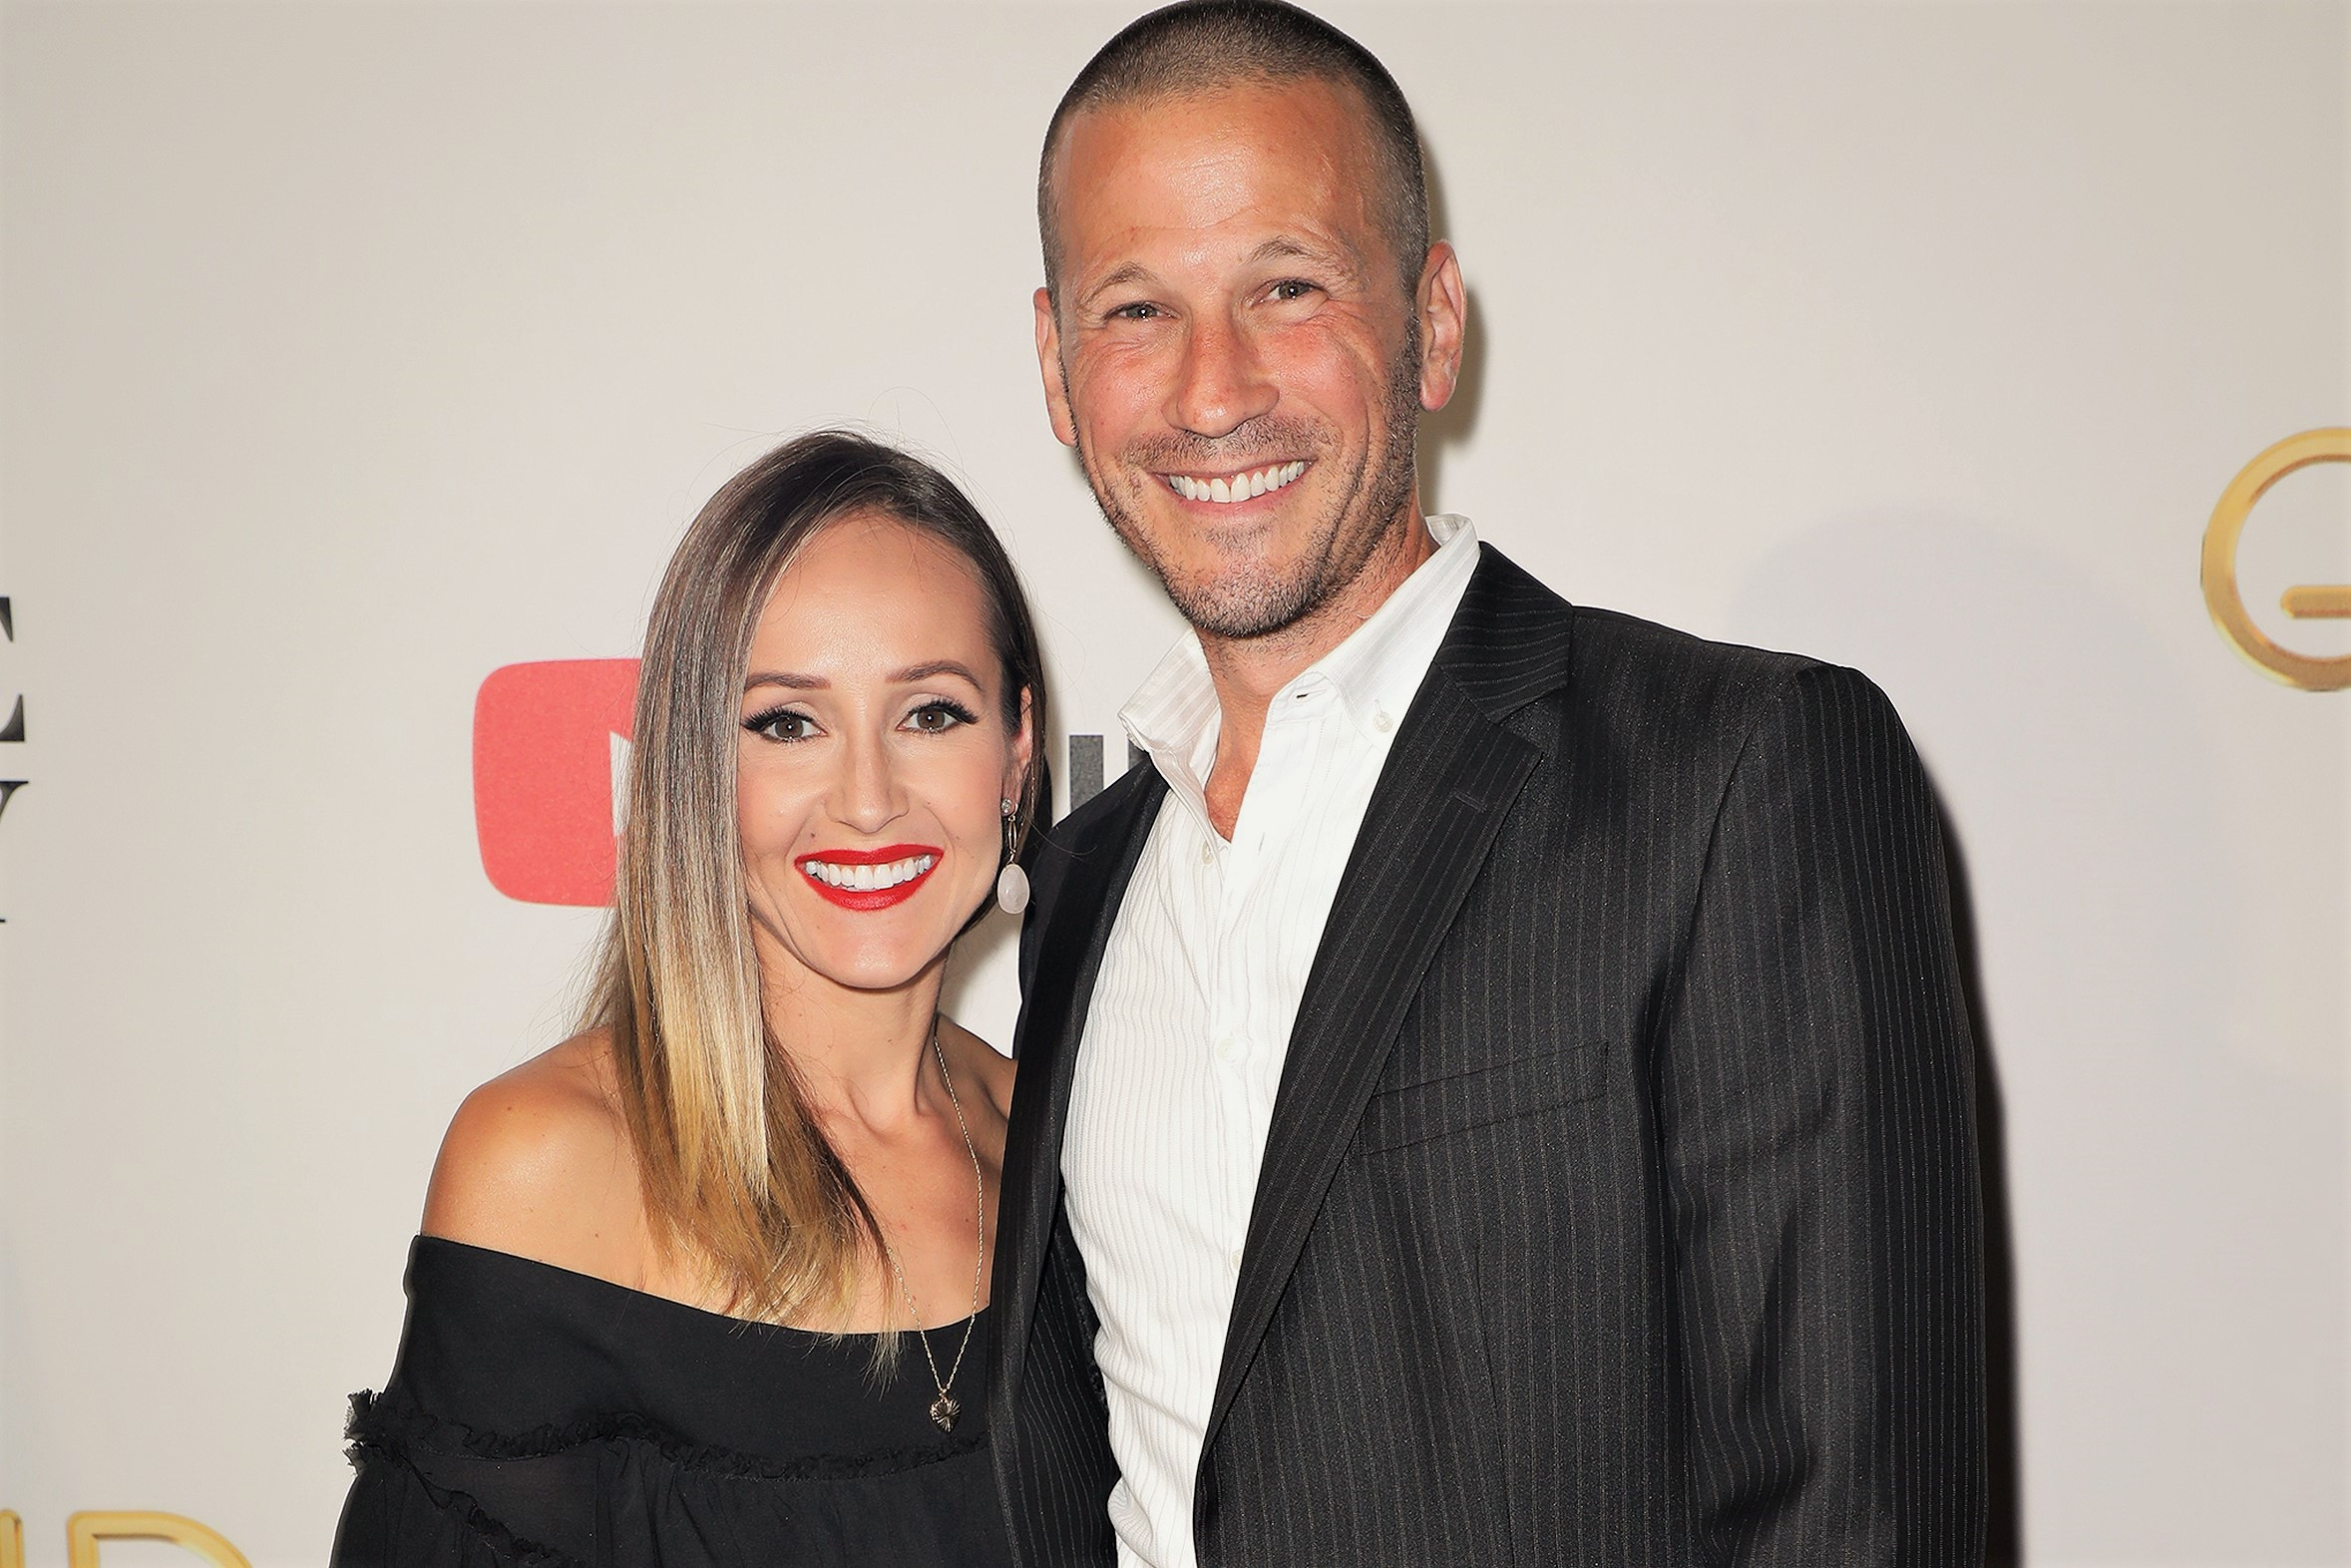 J.P. and Ashley Rosenbaum Reveal a Social Media Commenter Told Them Their Daughter Had Torticollis